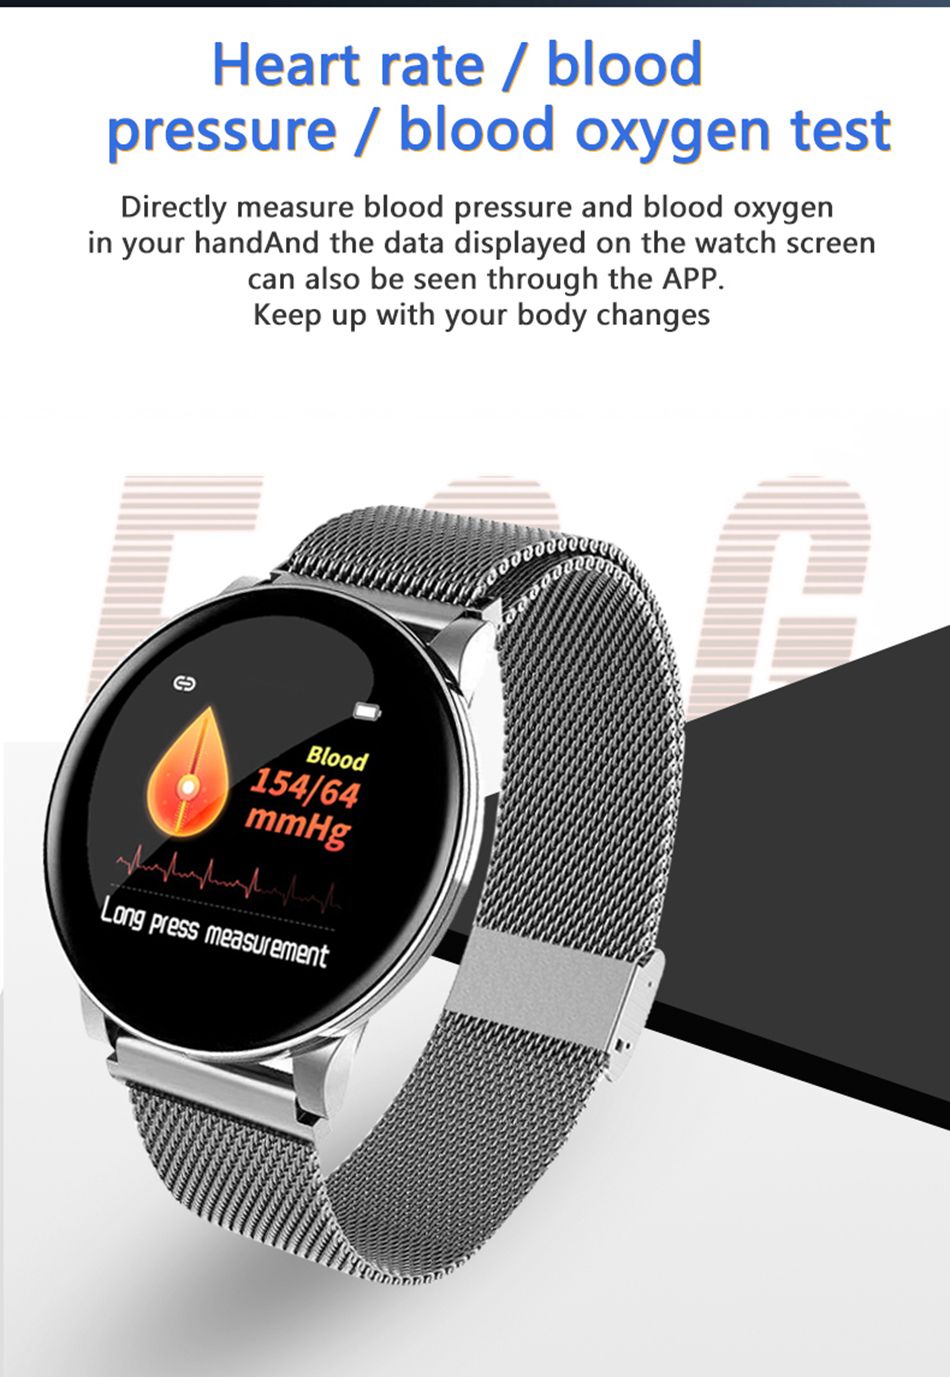 H3105bb60009a4191b801550cc1bcf54fG BINSSAW Couples Smart Watch Kid Heart Rate Blood Pressure Dynamic Fitness Tracker Wearable Electronics Devices Smart Sport Watch